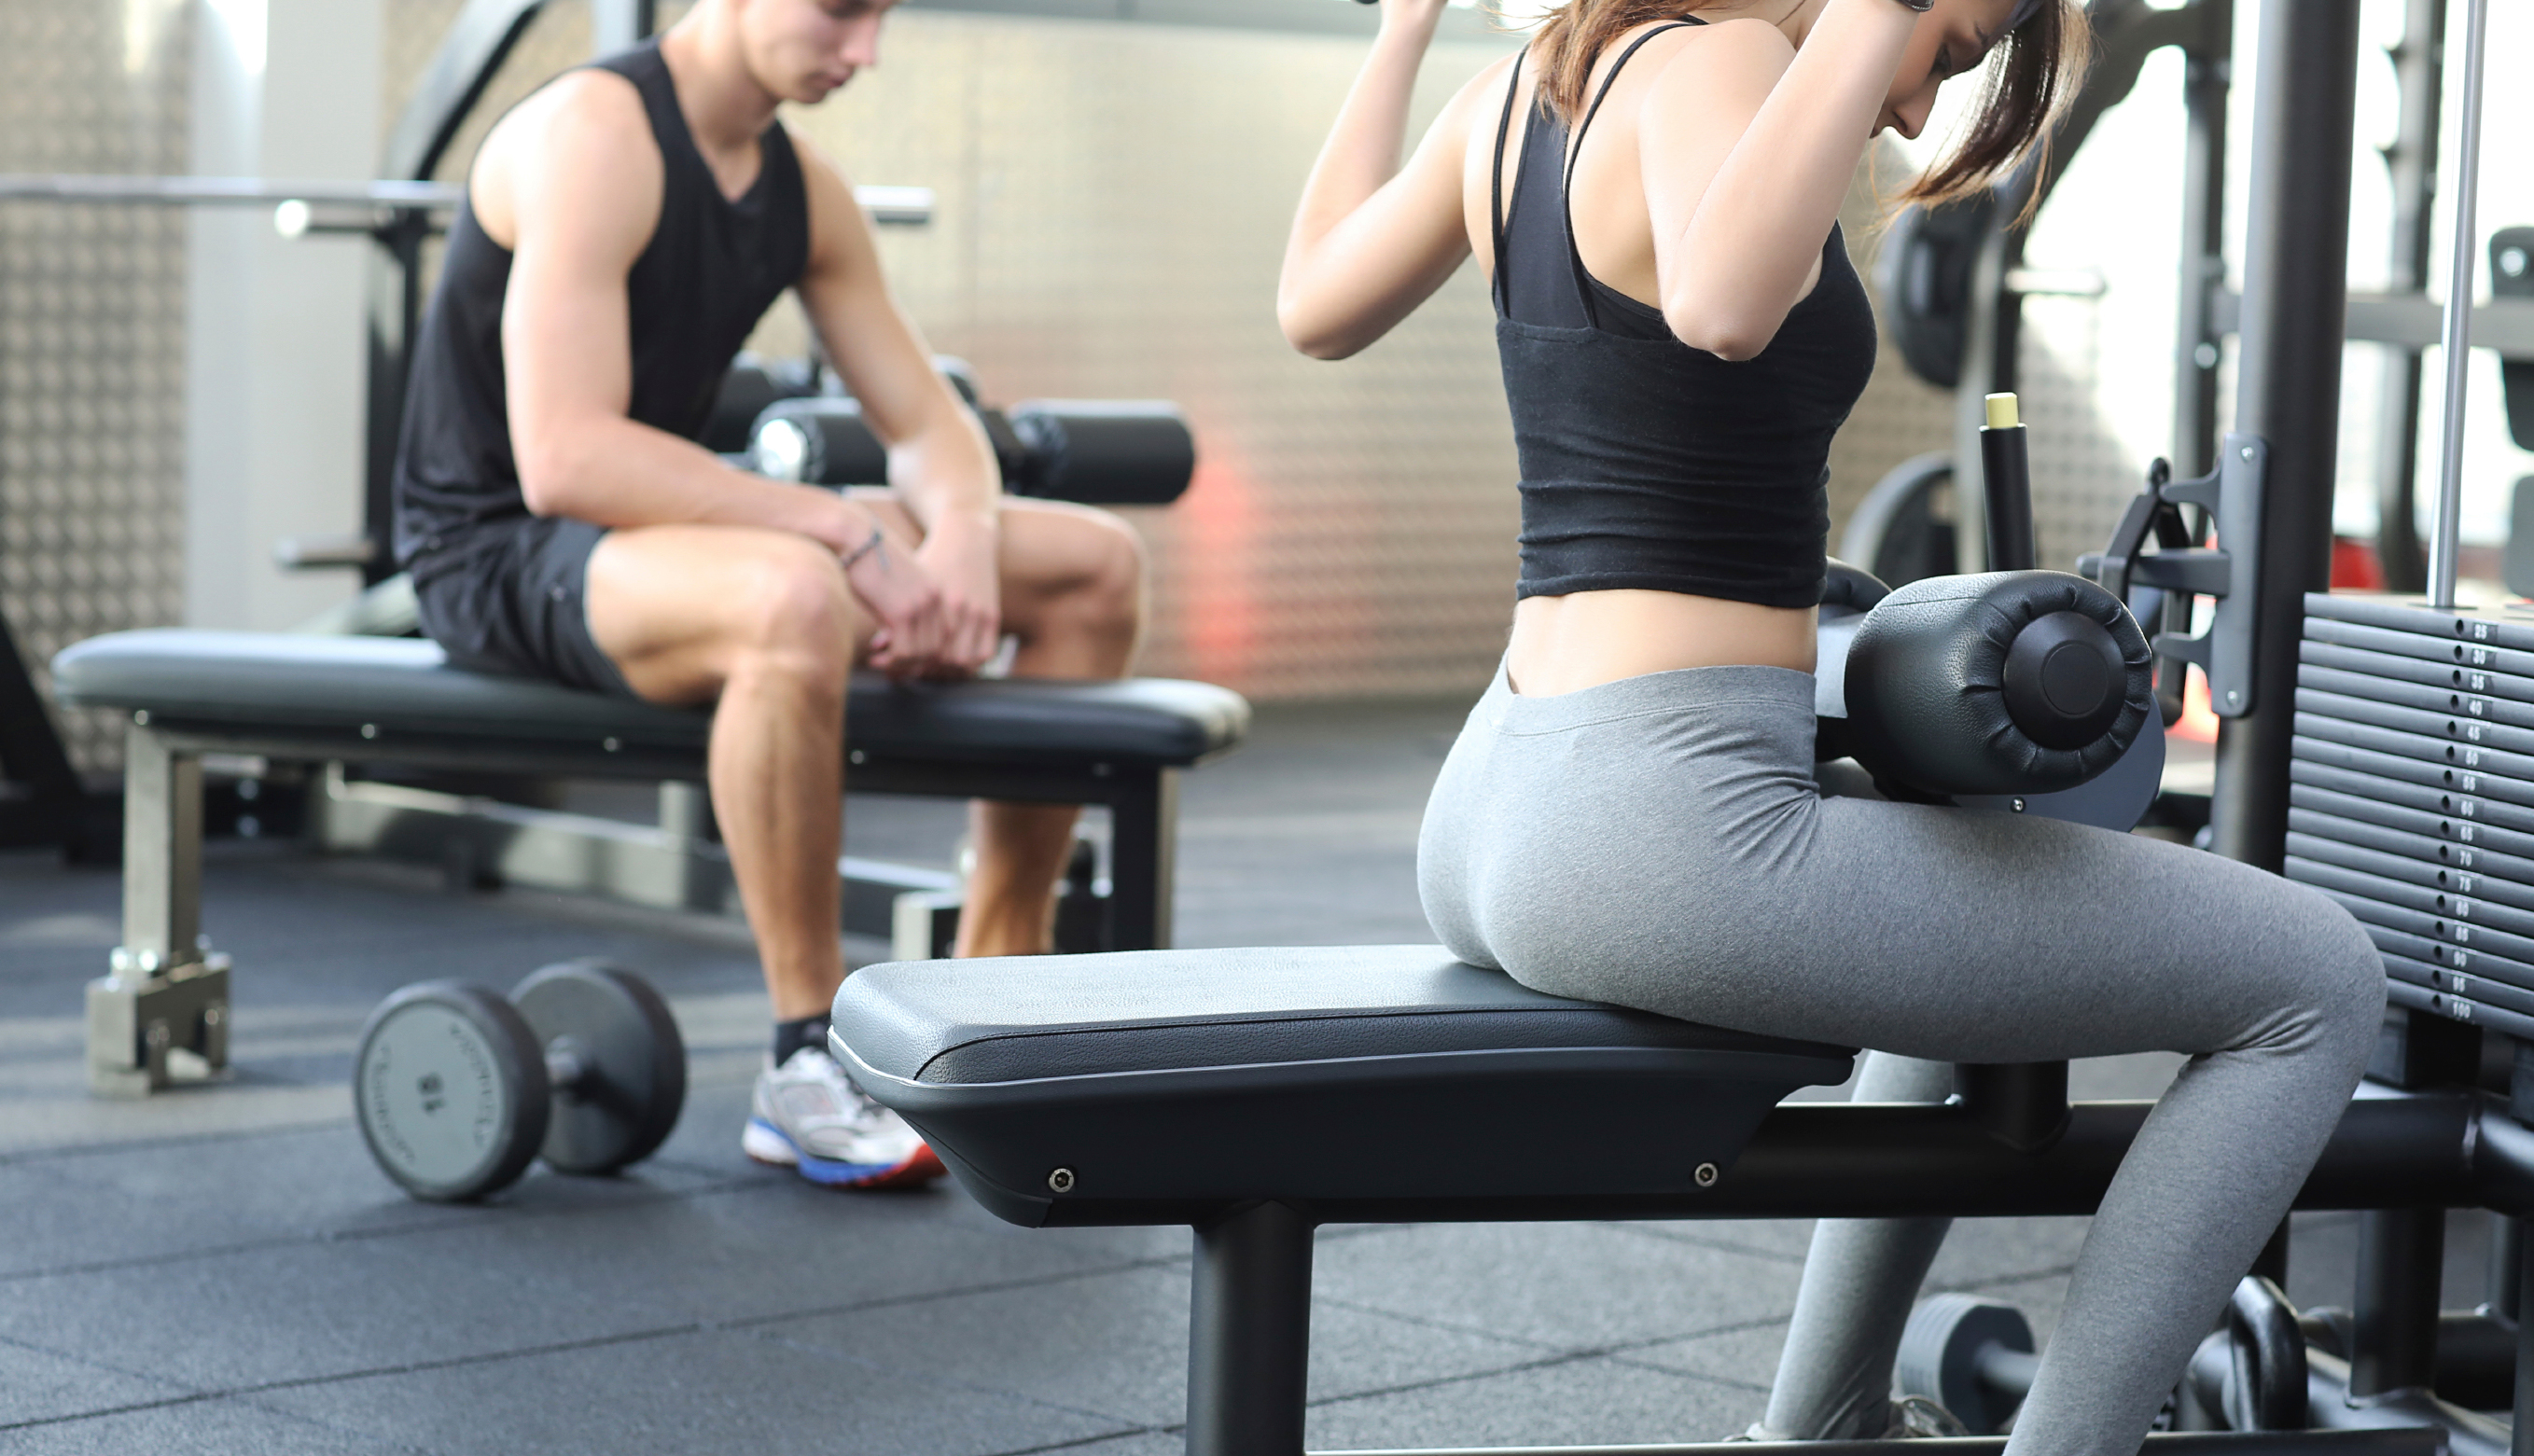 Gym wallpapers, Sports, HQ Gym pictures | 4K Wallpapers 2019